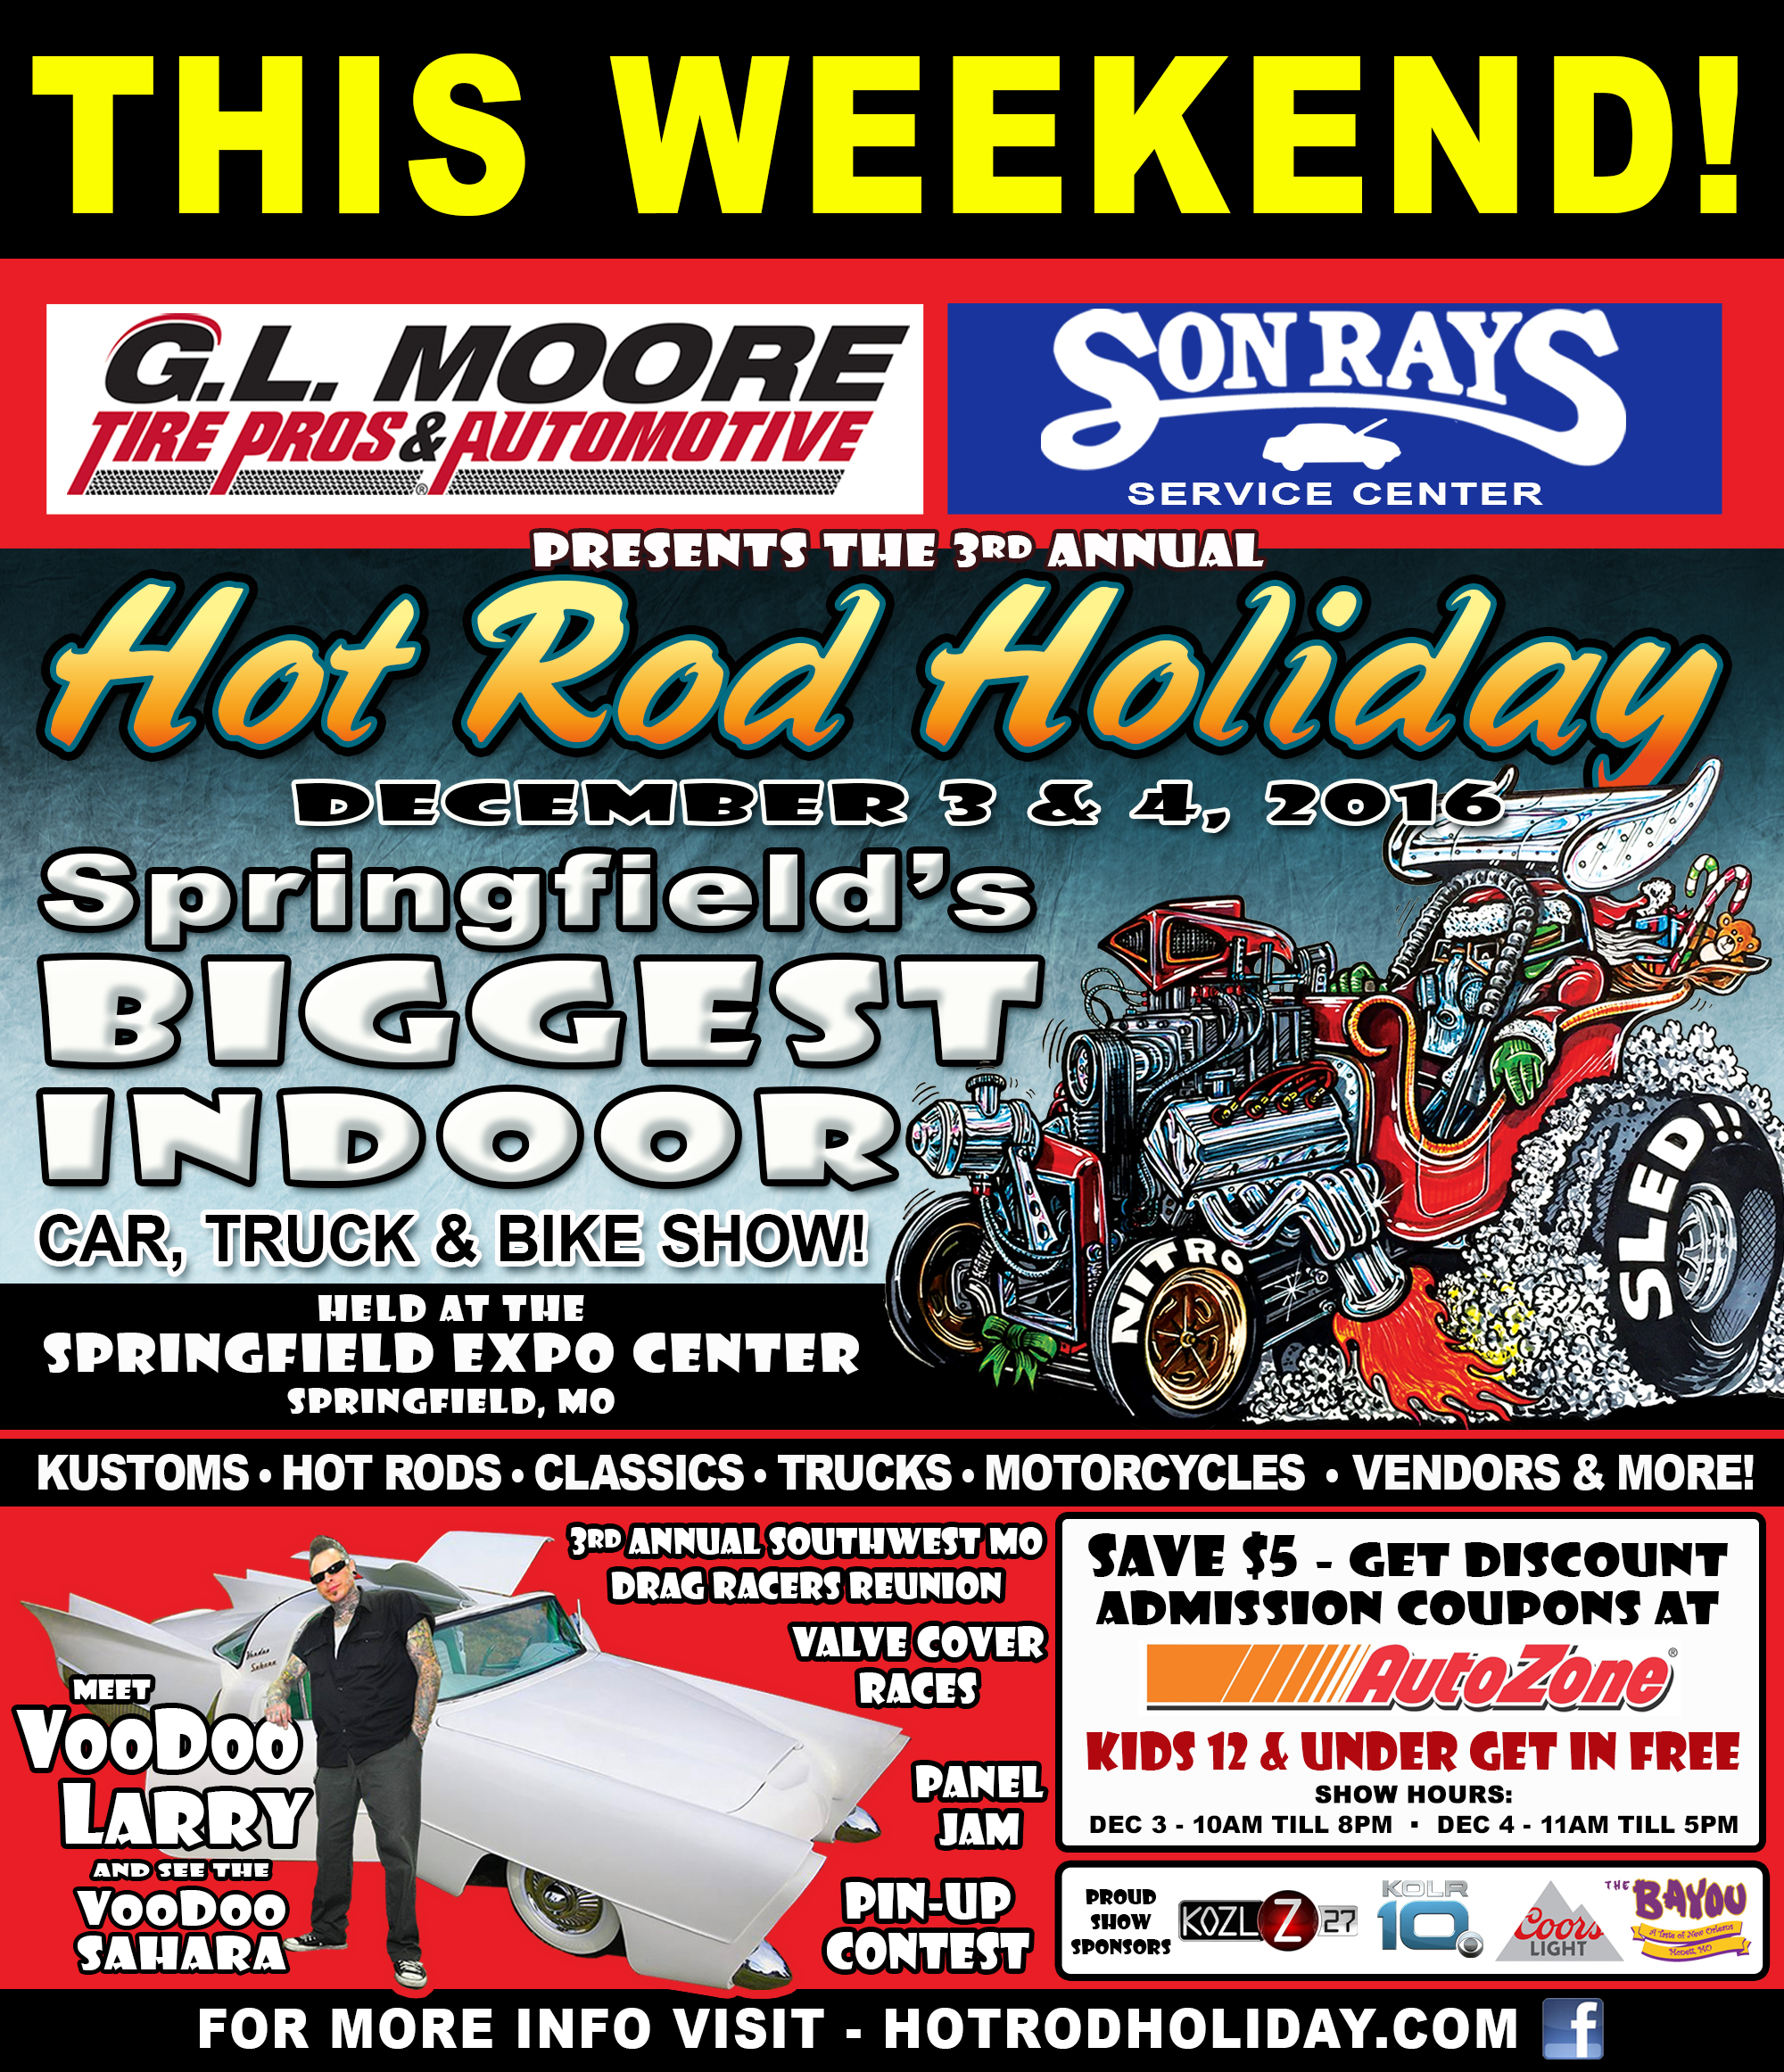 hot-rod-holiday-2016-this-weekend